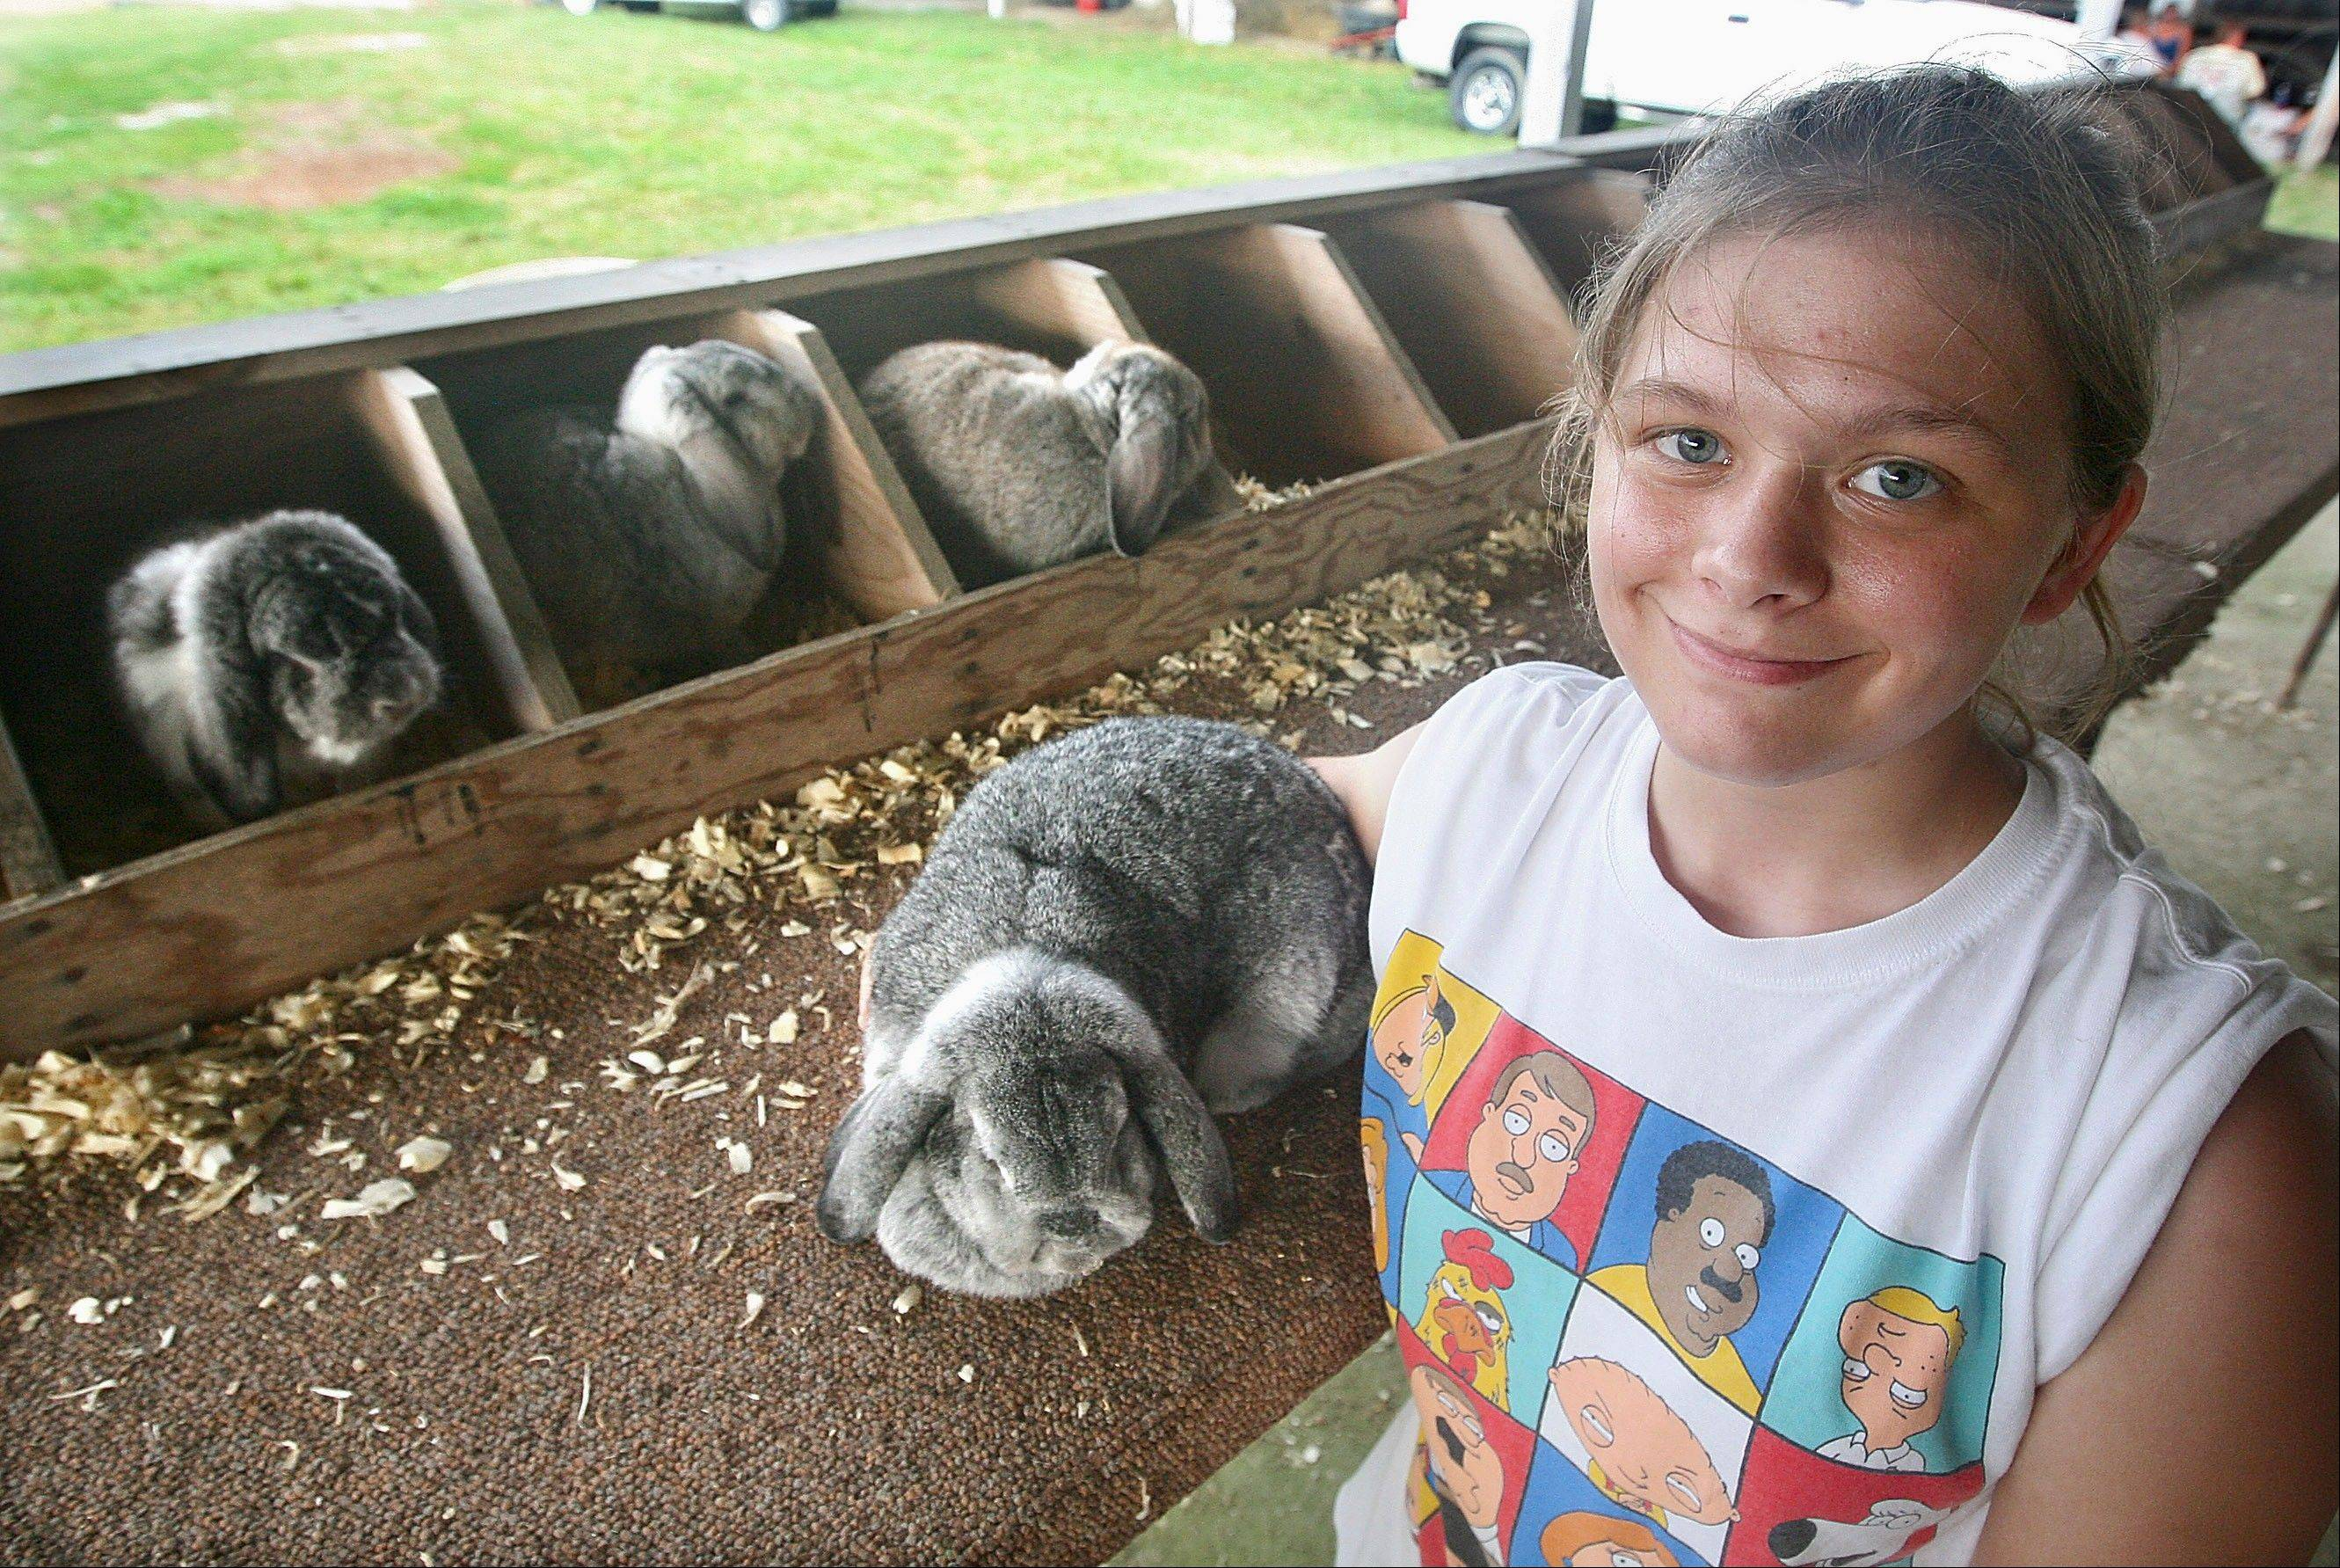 Kayla Obert, 20, of Quincy brought 53 rabbits to the Adams County fair.